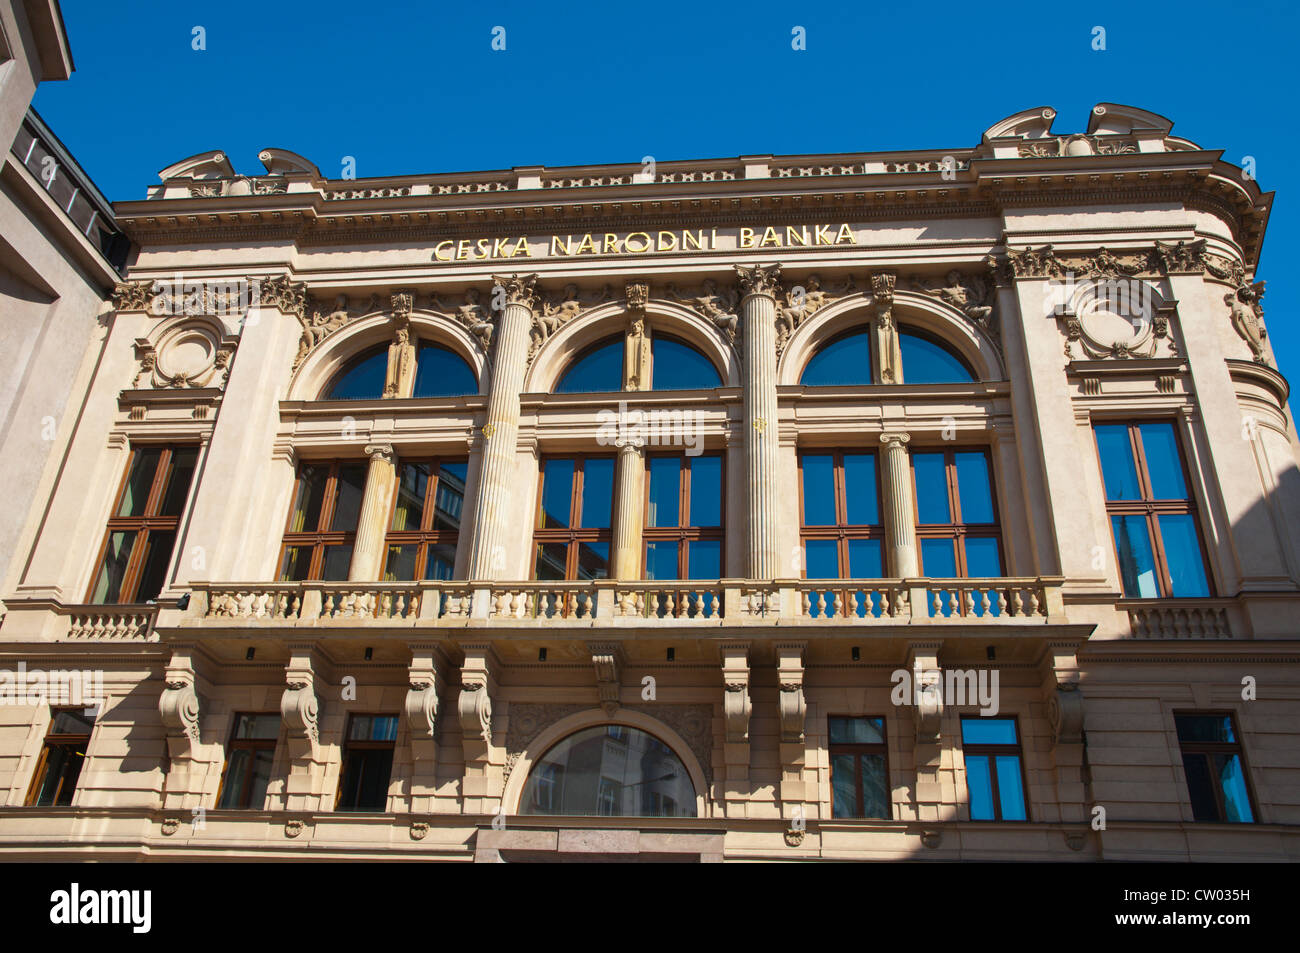 Nationalbank Essen national bank stockfotos national bank bilder alamy